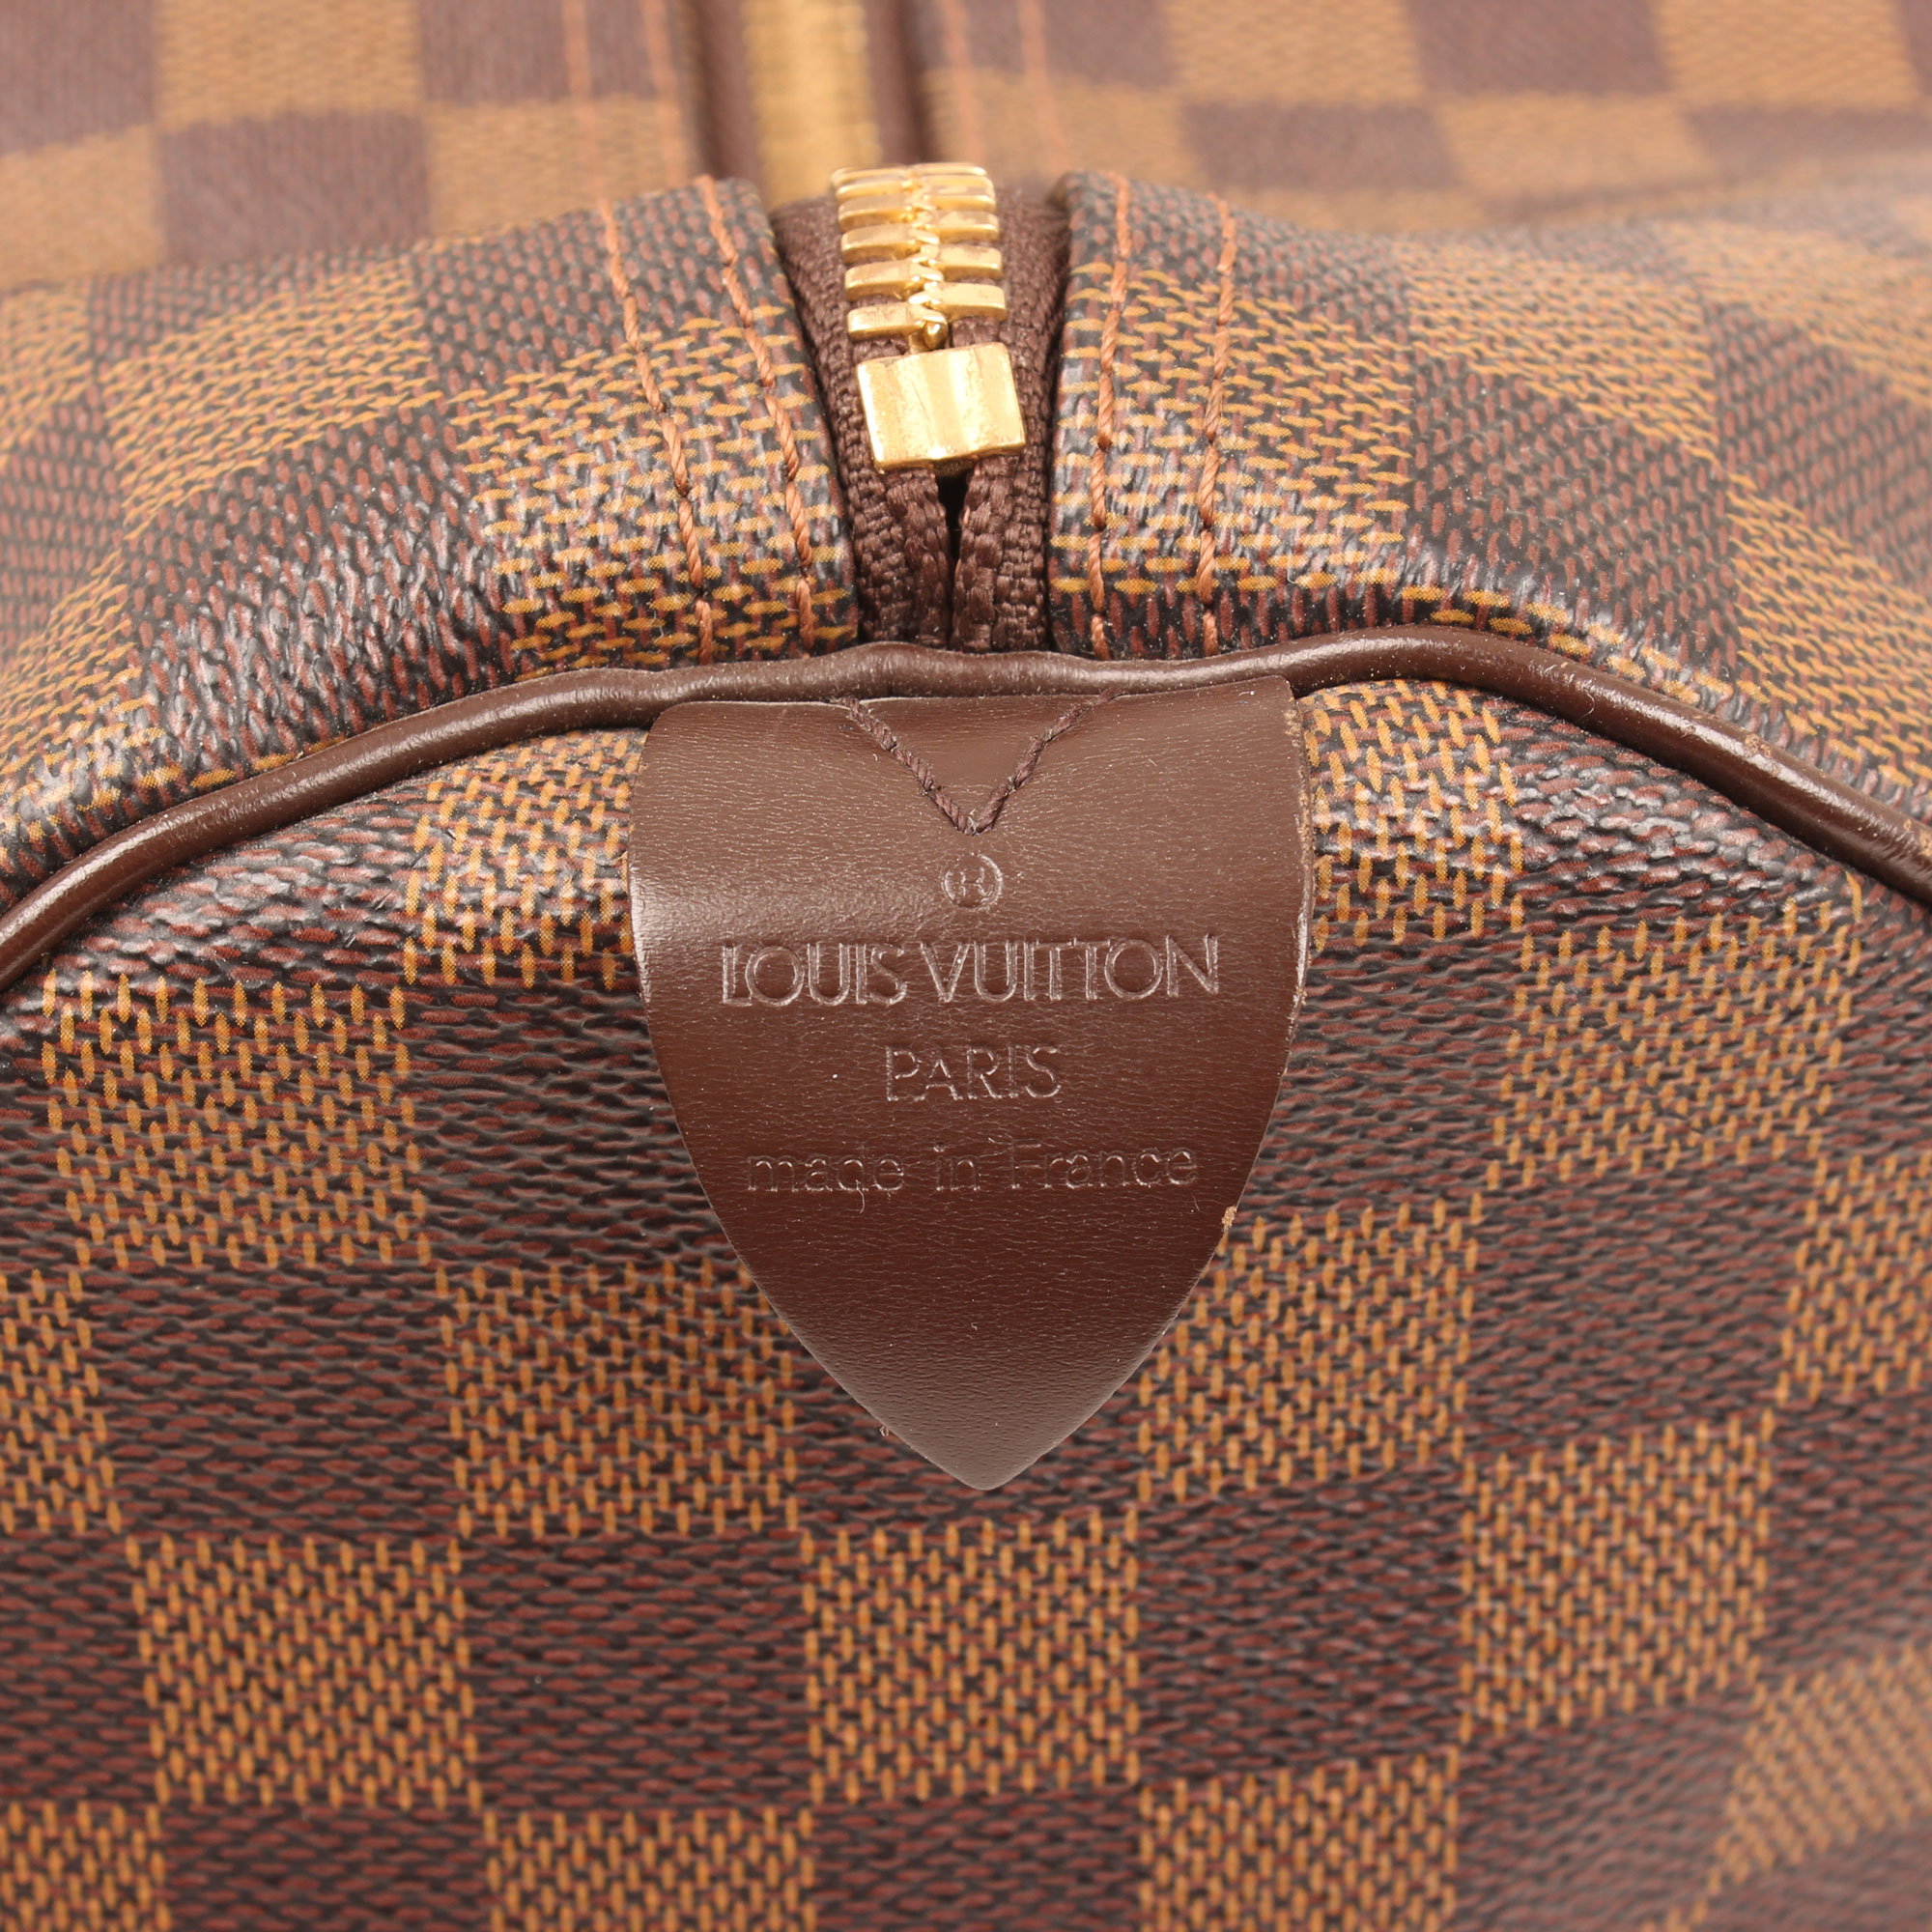 20a1b3fac Louis Vuitton Keepall 50 Damier Ébène Canvas Travel Bag I CBL Bags